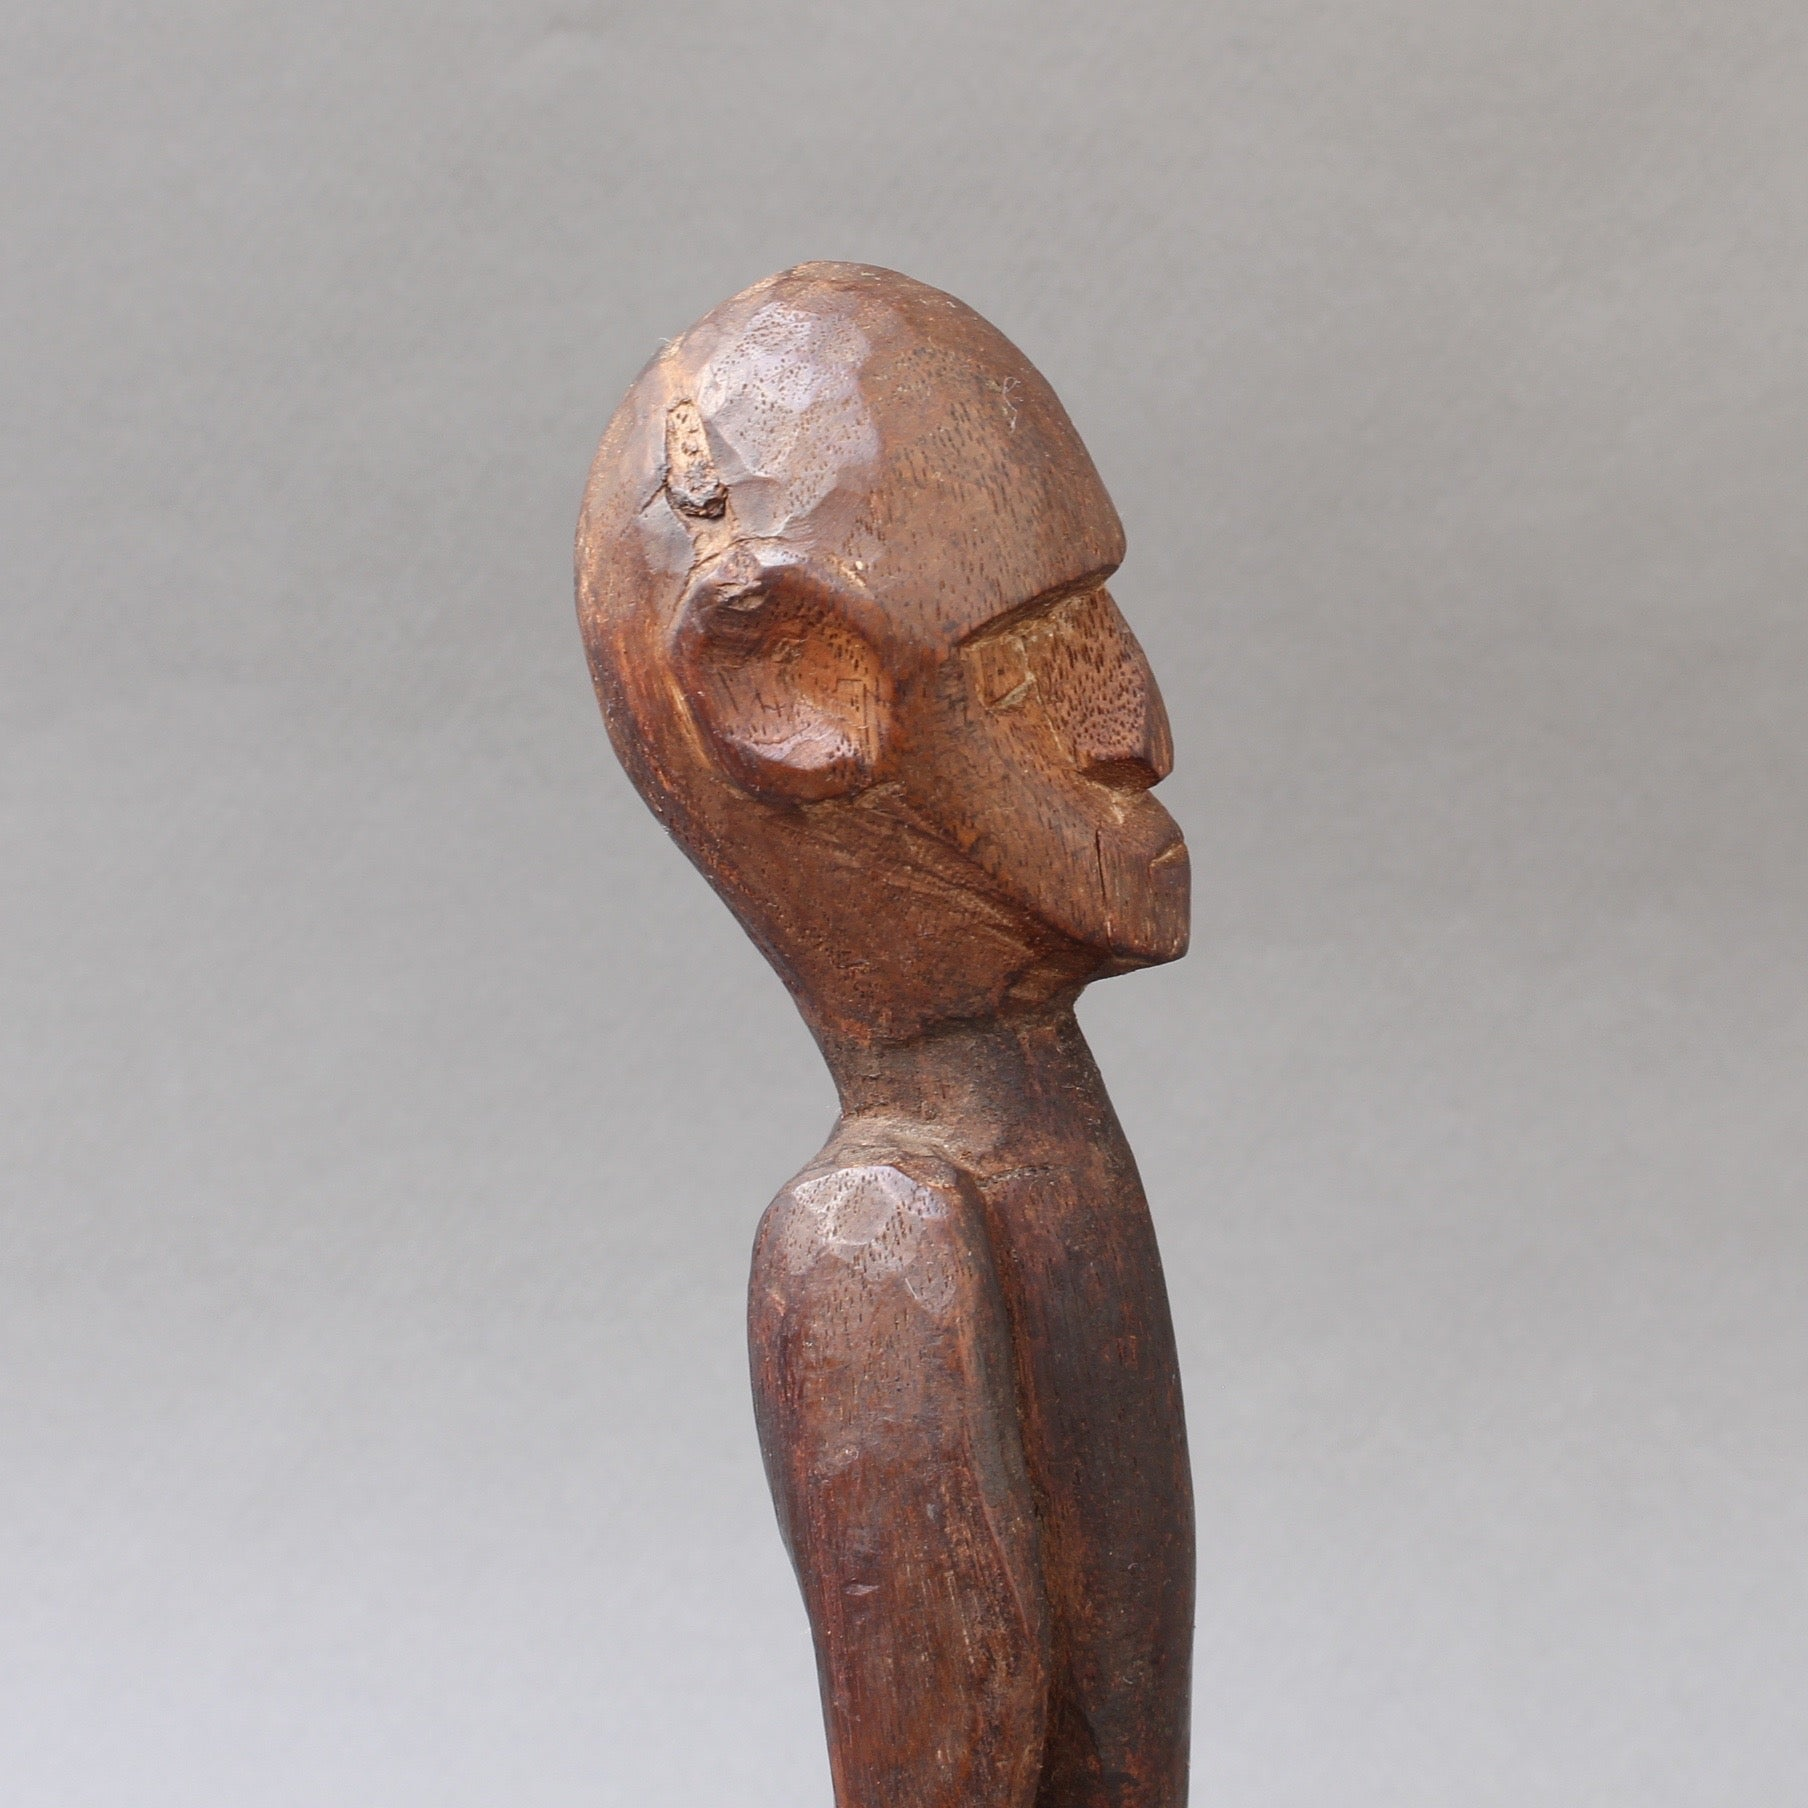 Wooden Sculpture / Carving of Sitting Figure from Sumba Island, Indonesia (circa 1960s - 1980s)